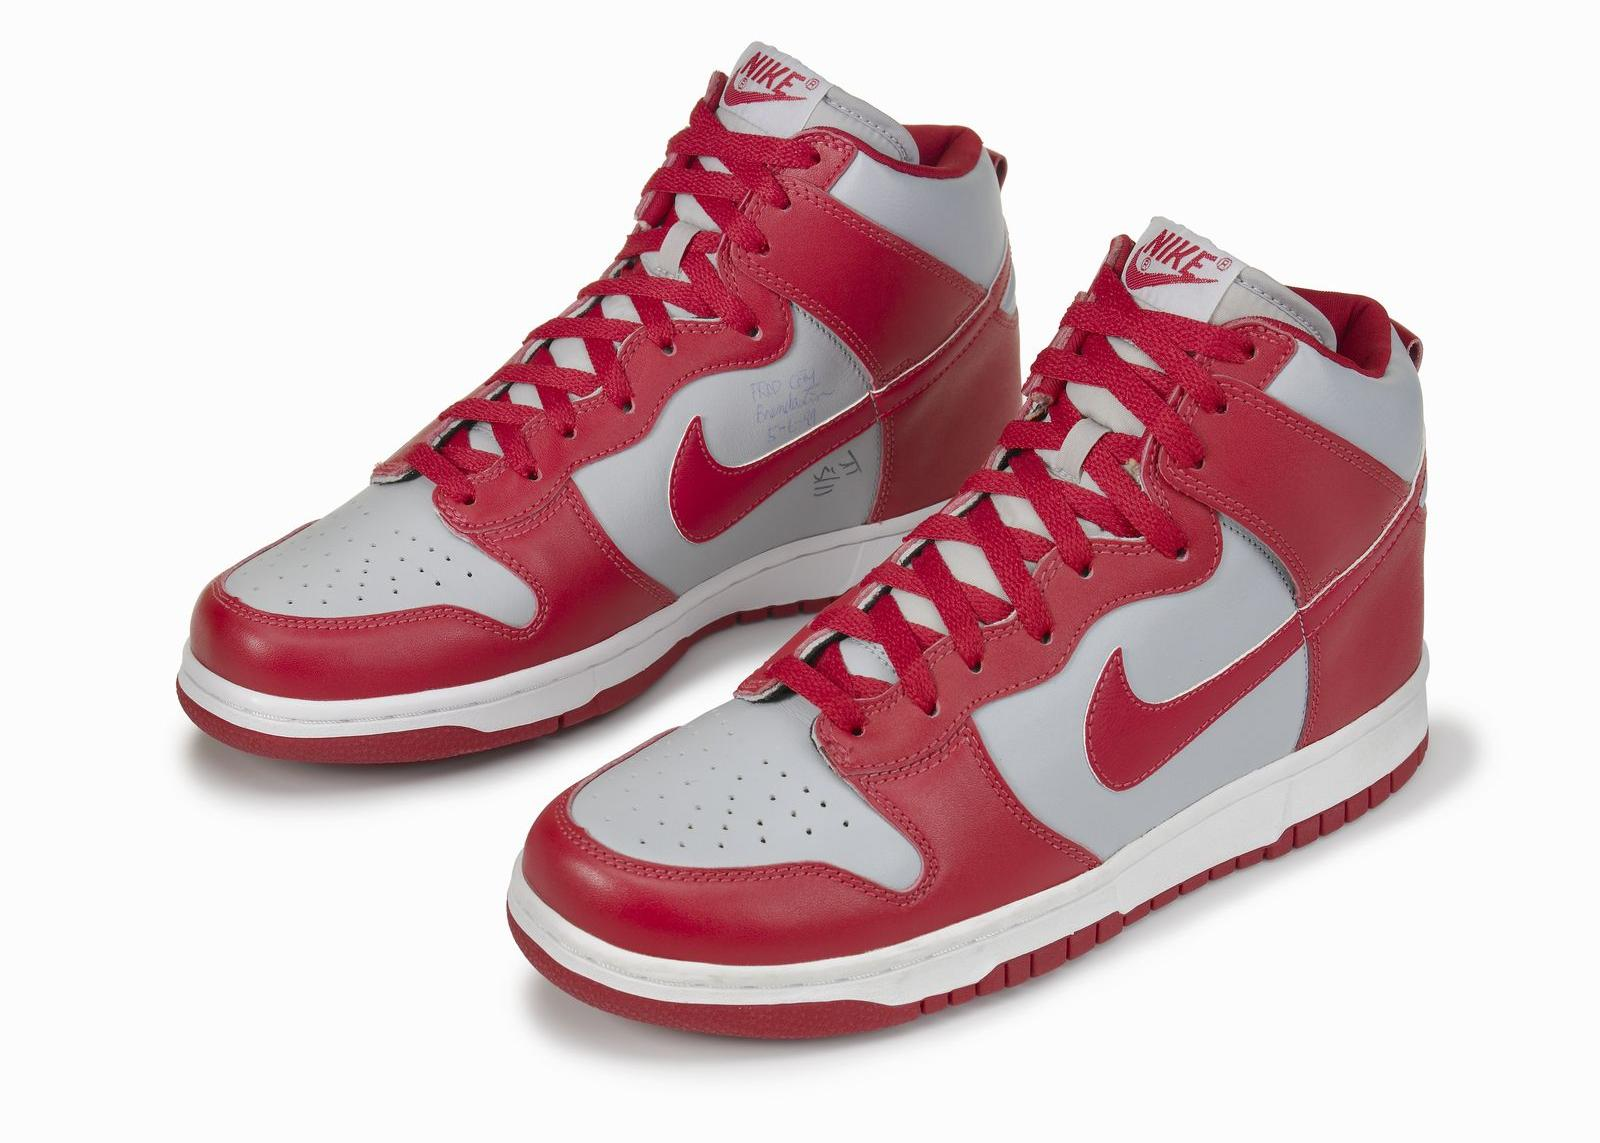 promo code 2767a 59d65 Inside Access  The Nike Dunk Celebrates 30 Years as an Icon - Nike News